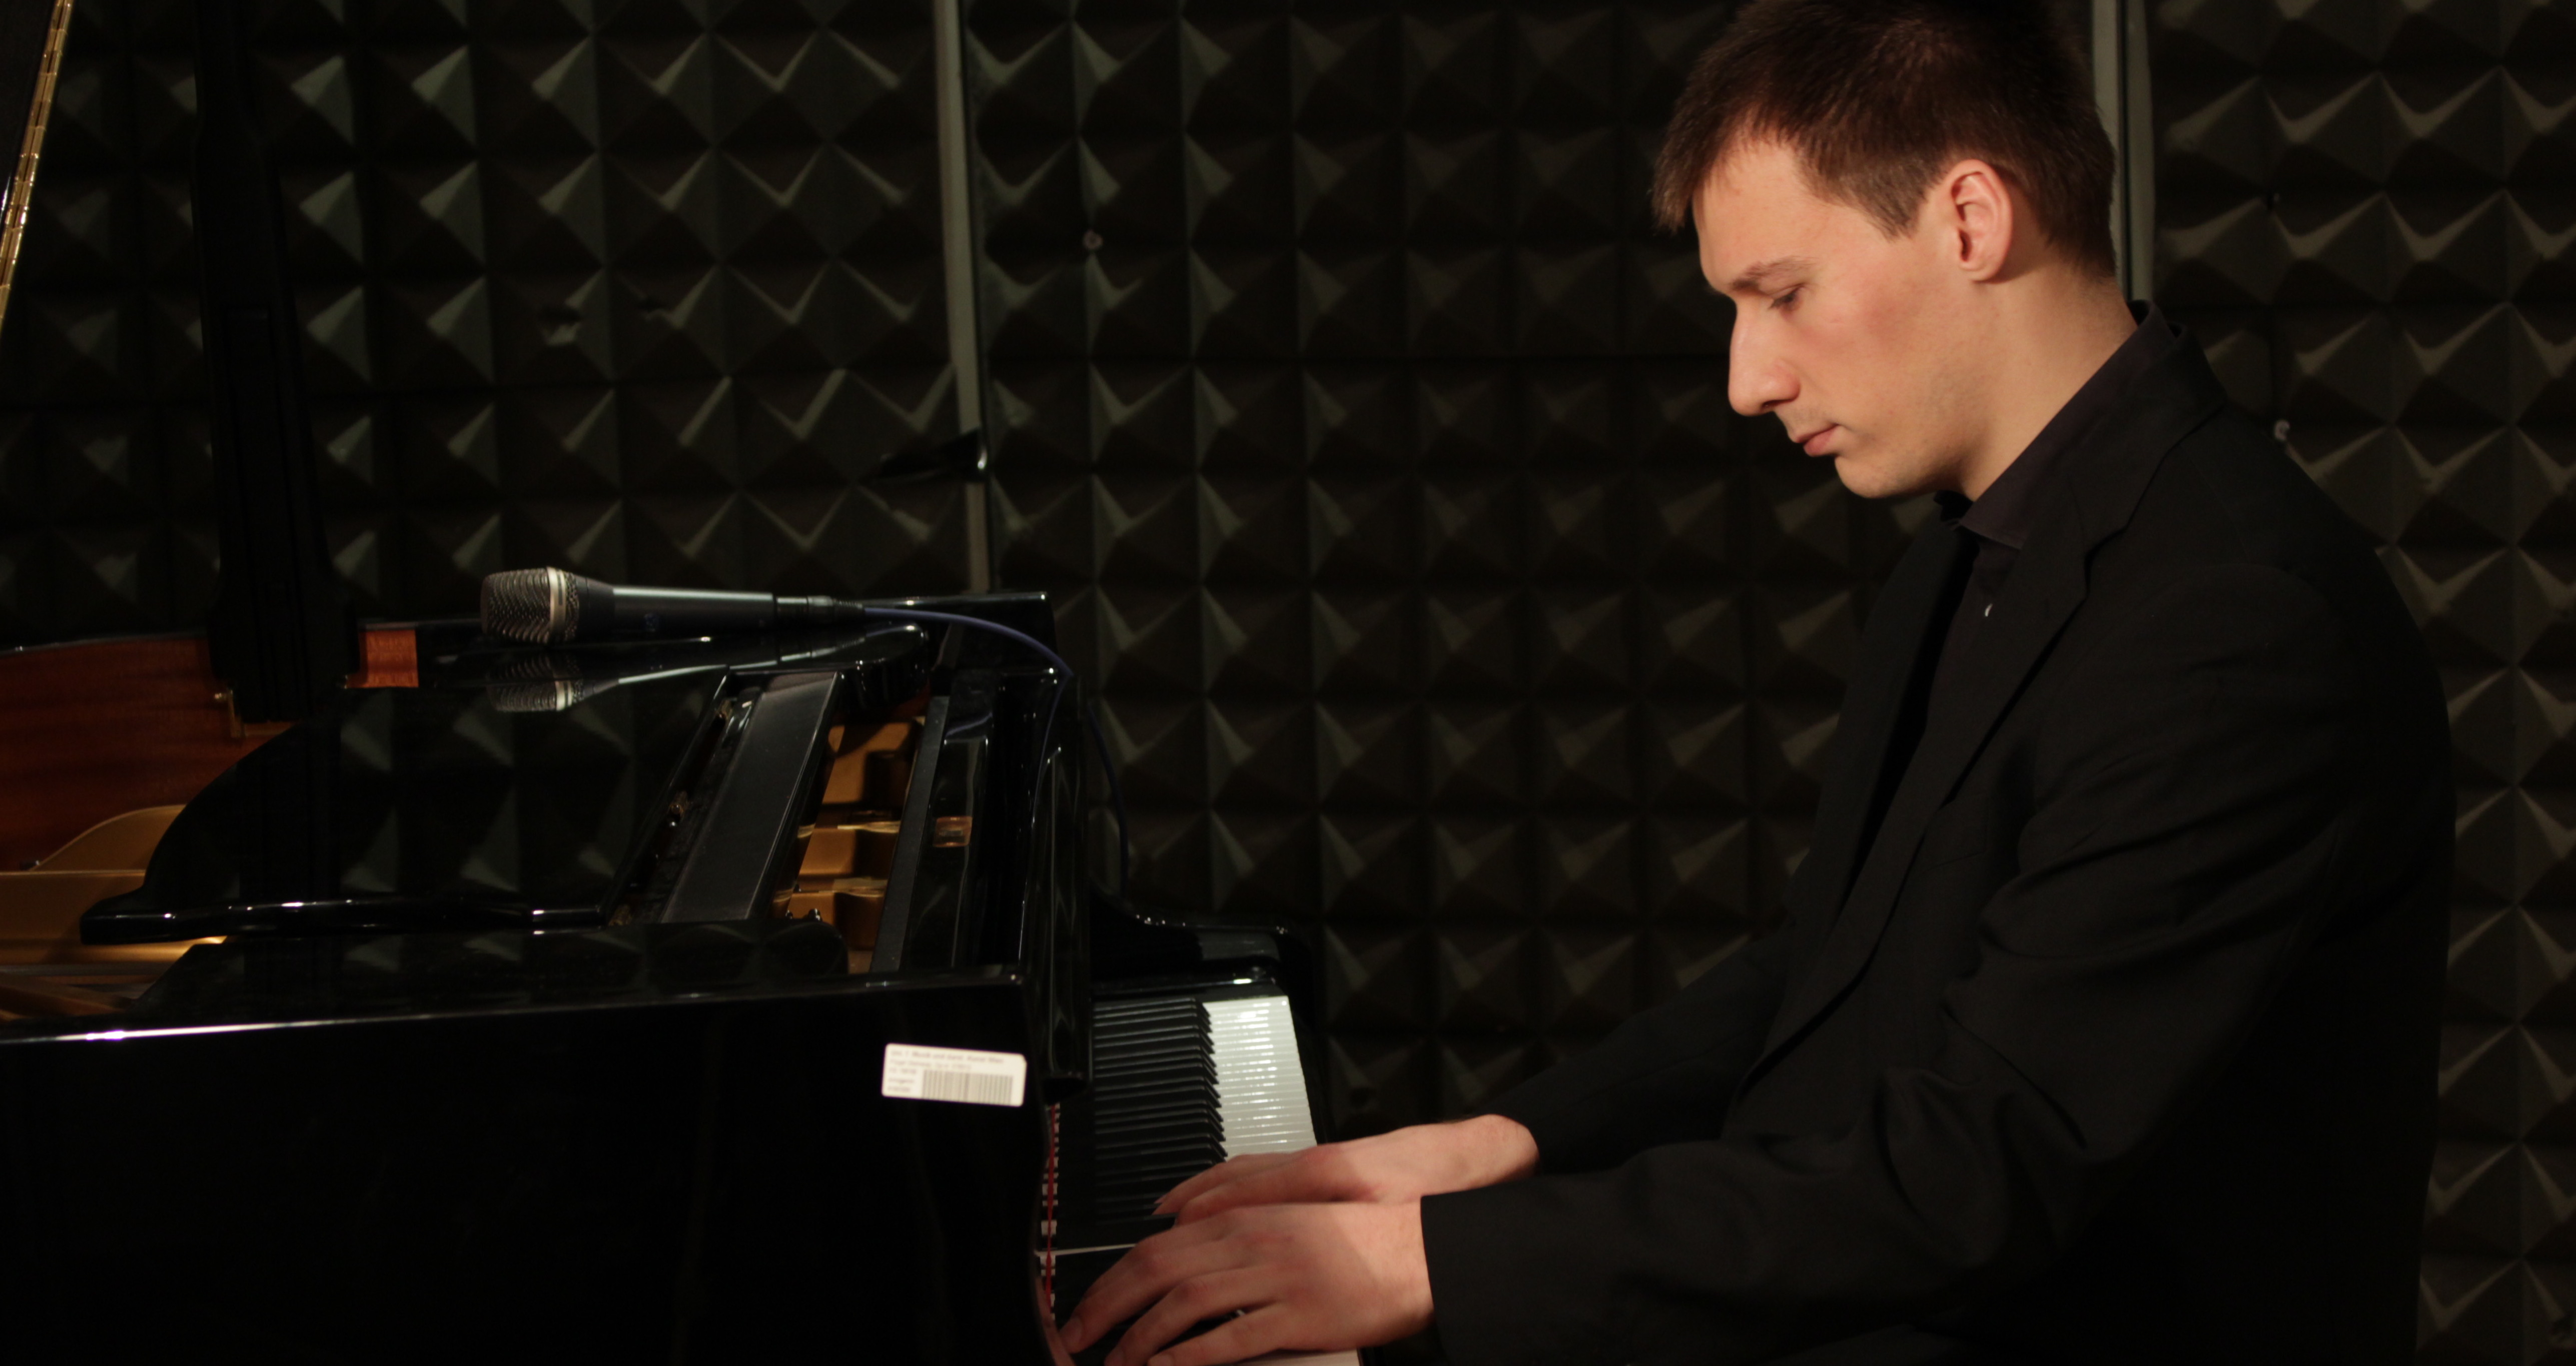 Marko Markus (composer), playing piano in the studio